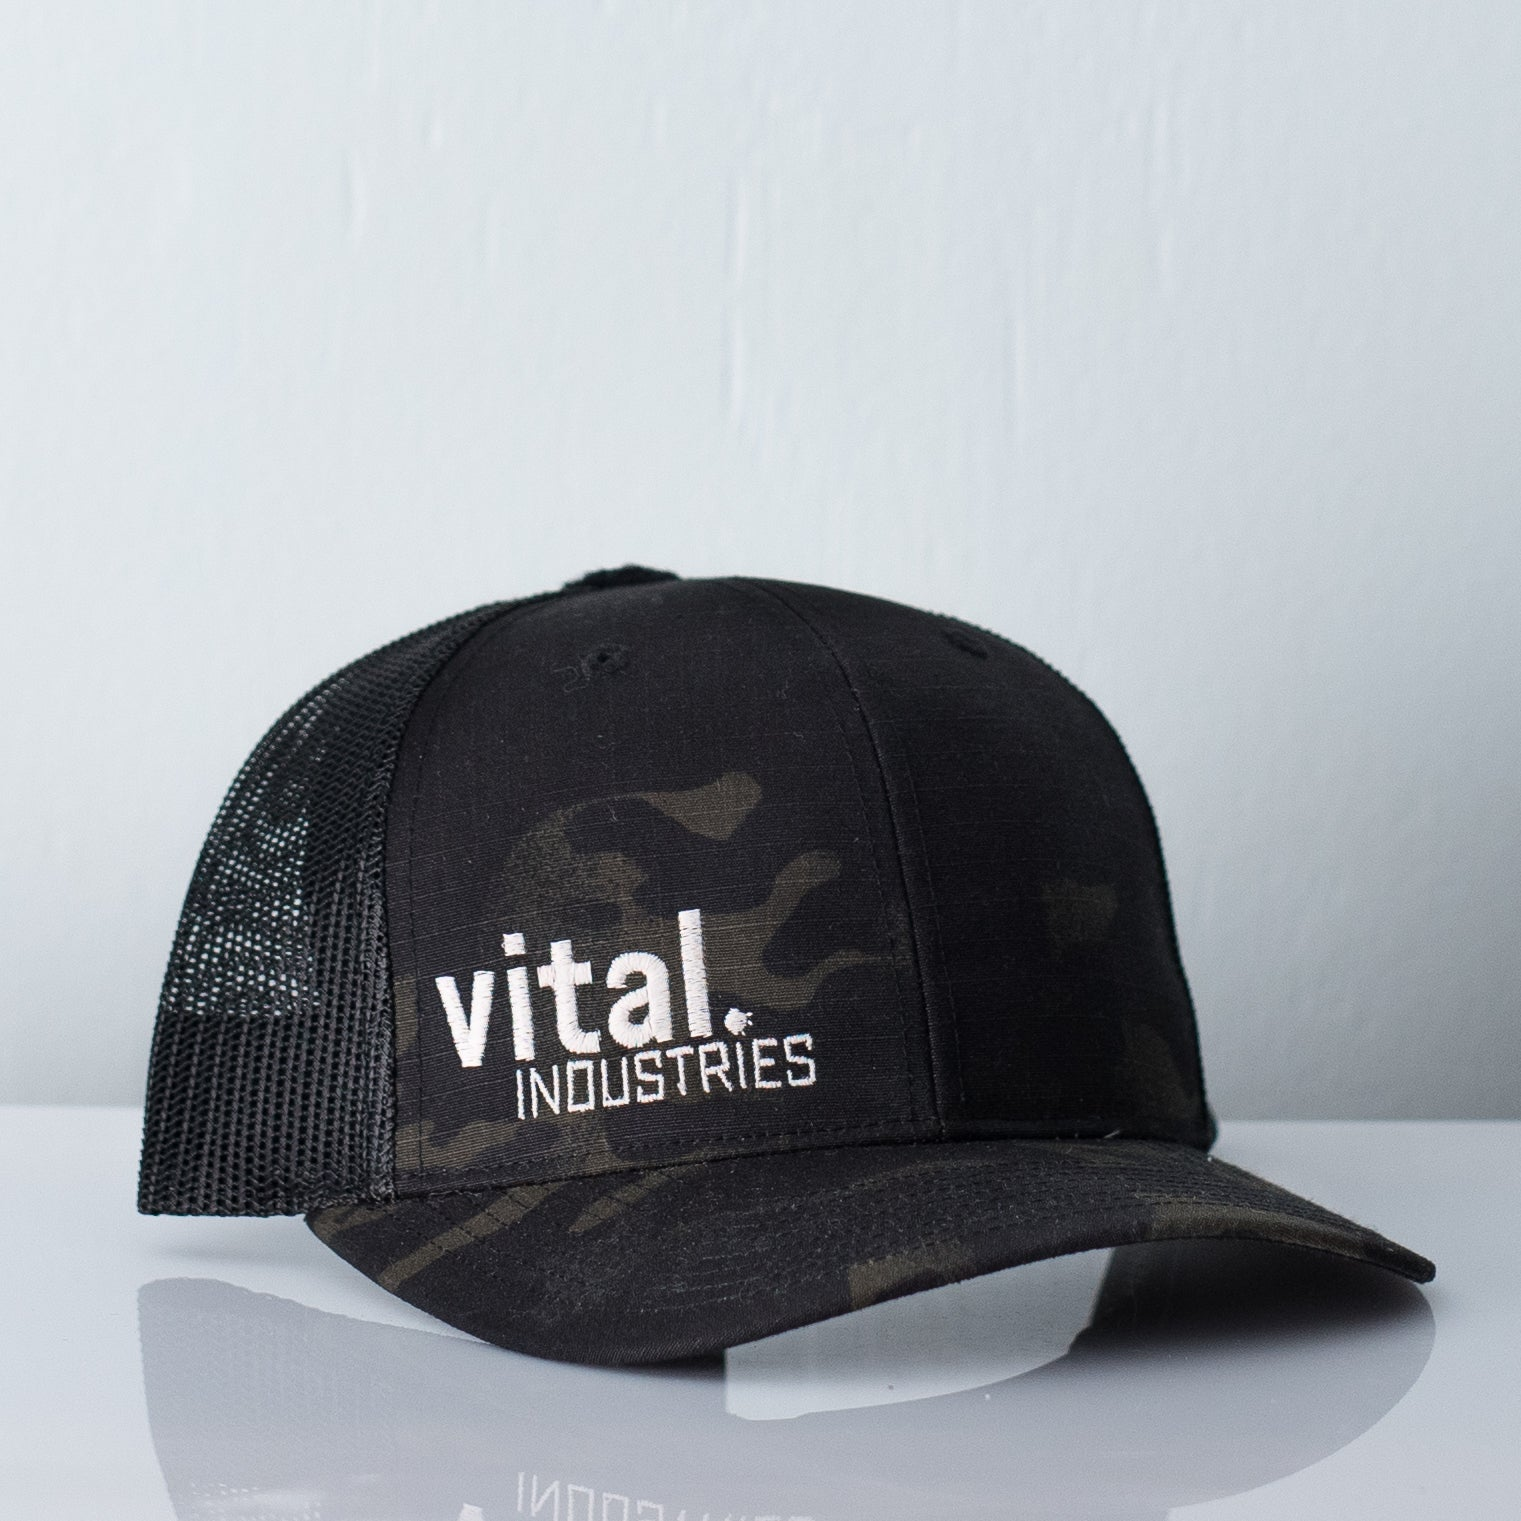 Dark camouflage mesh back trucker cap embroidered with Vital Industries logo in matte cream